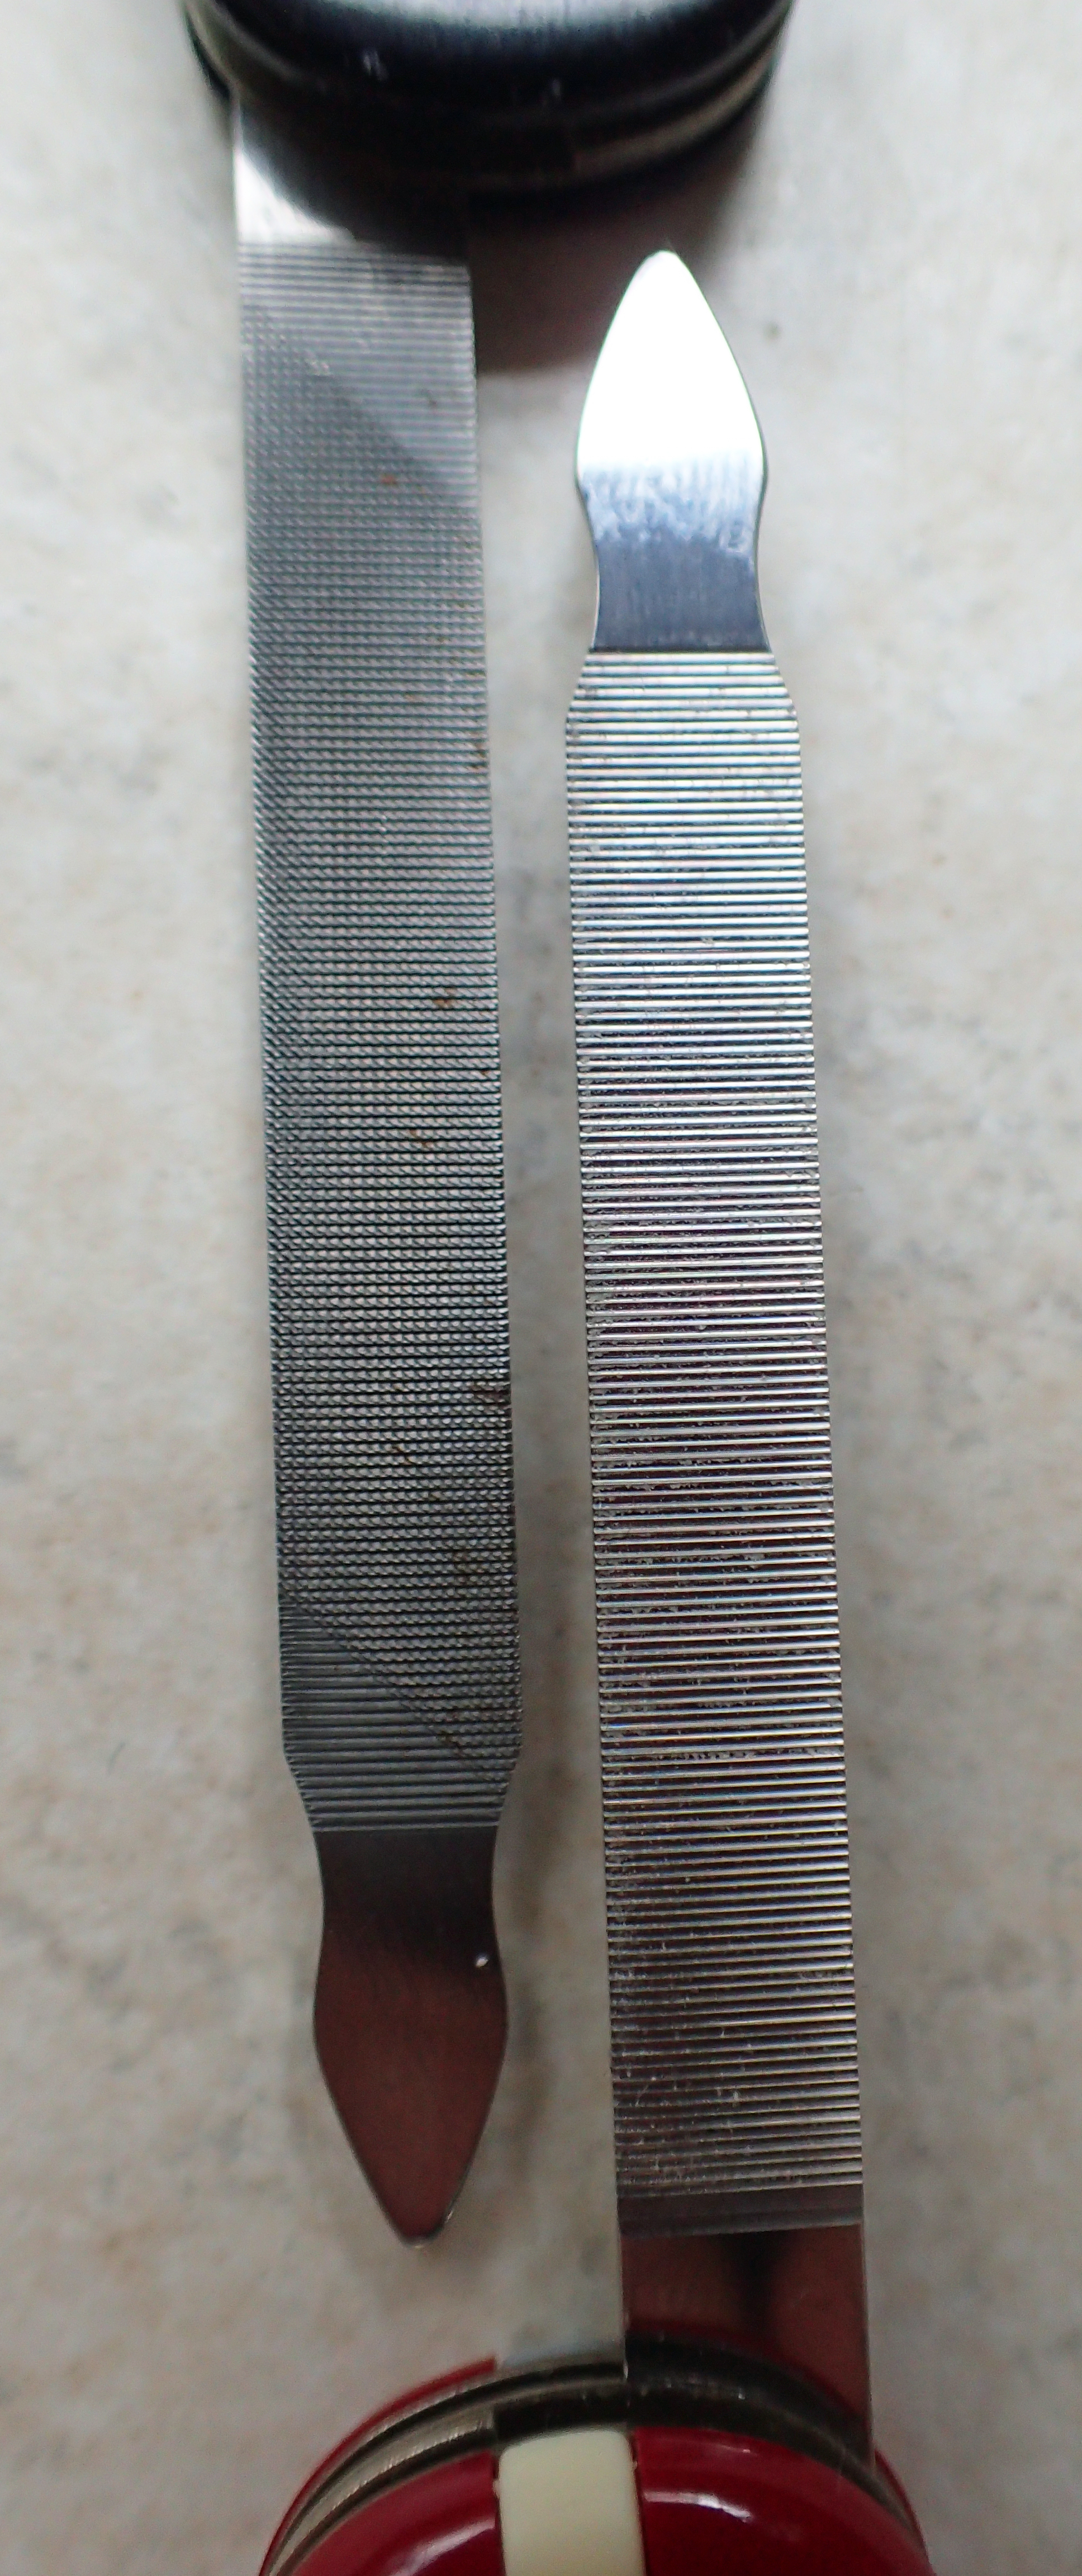 Cross, and single cut replacement, nail files on Executive compared